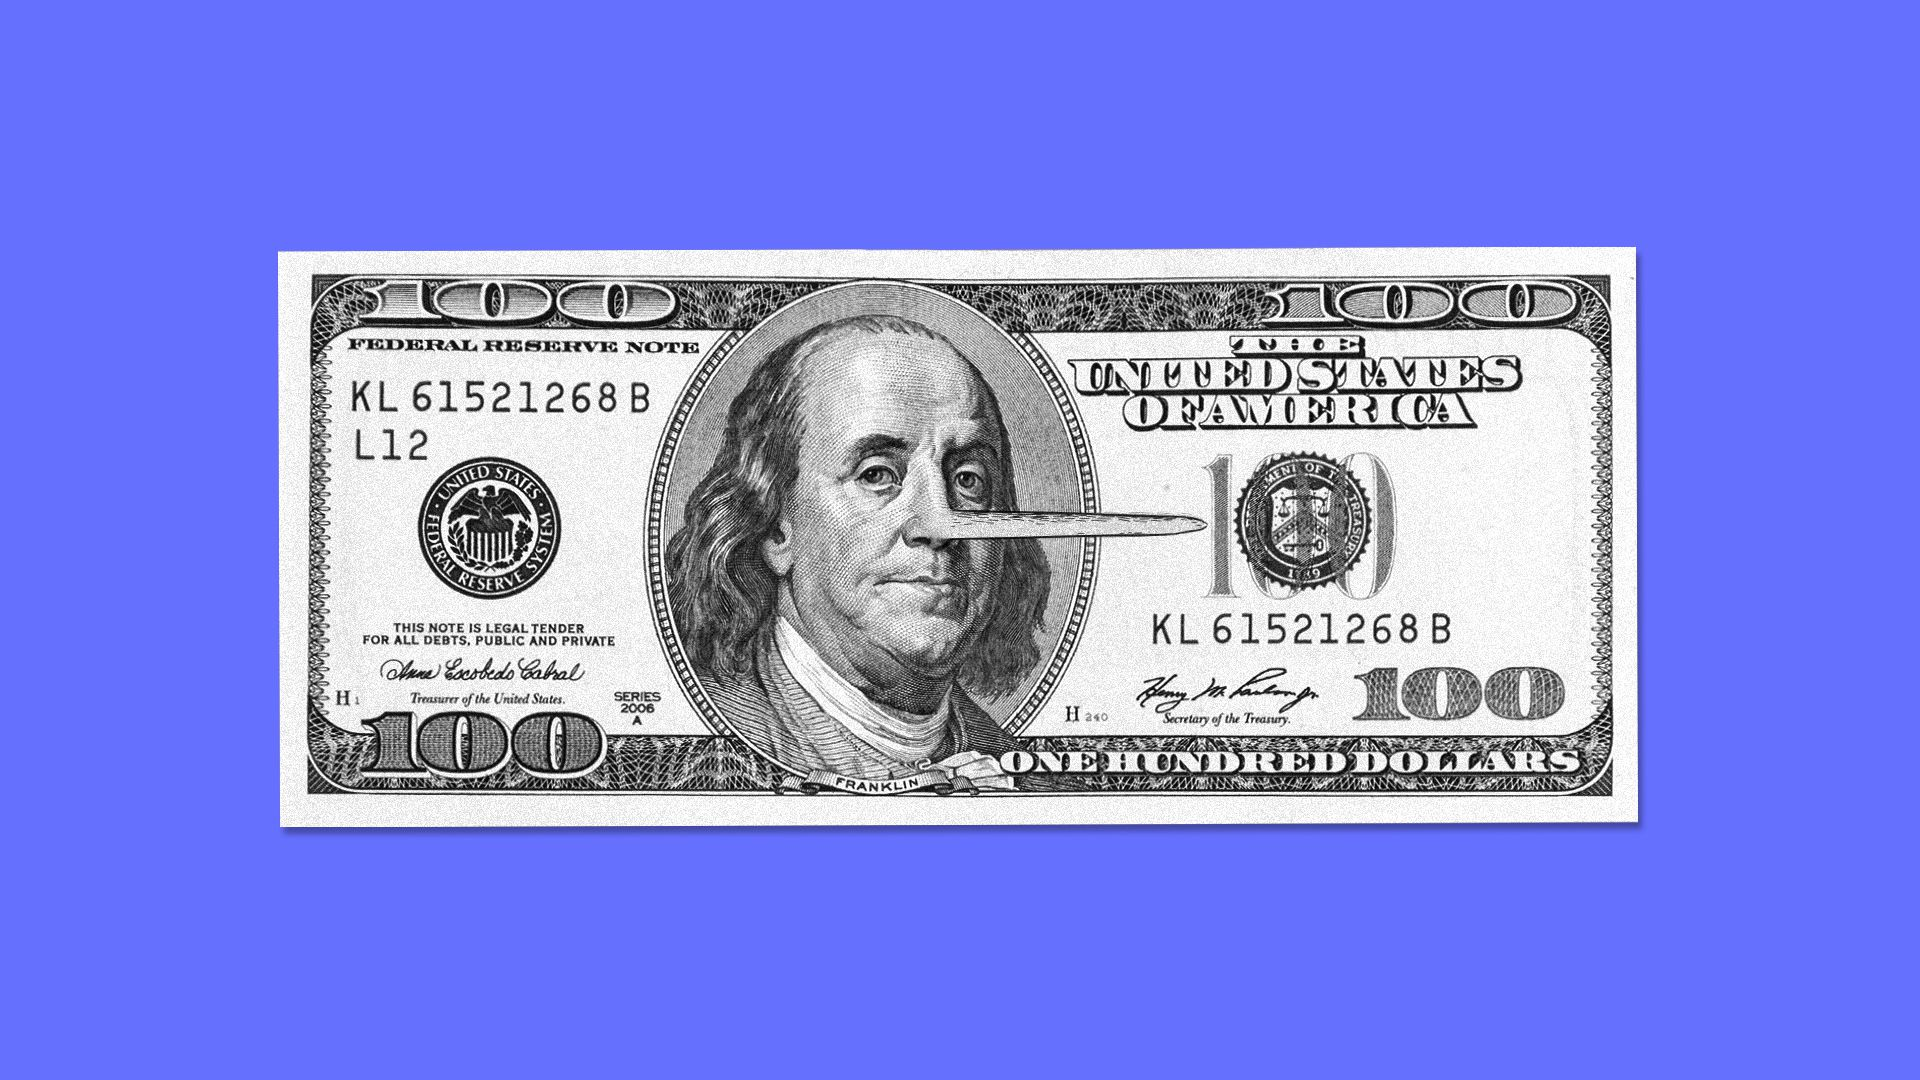 Illustration of a one hundred dollar bill, Benjamin Franklin has a Pinocchio-like nose.